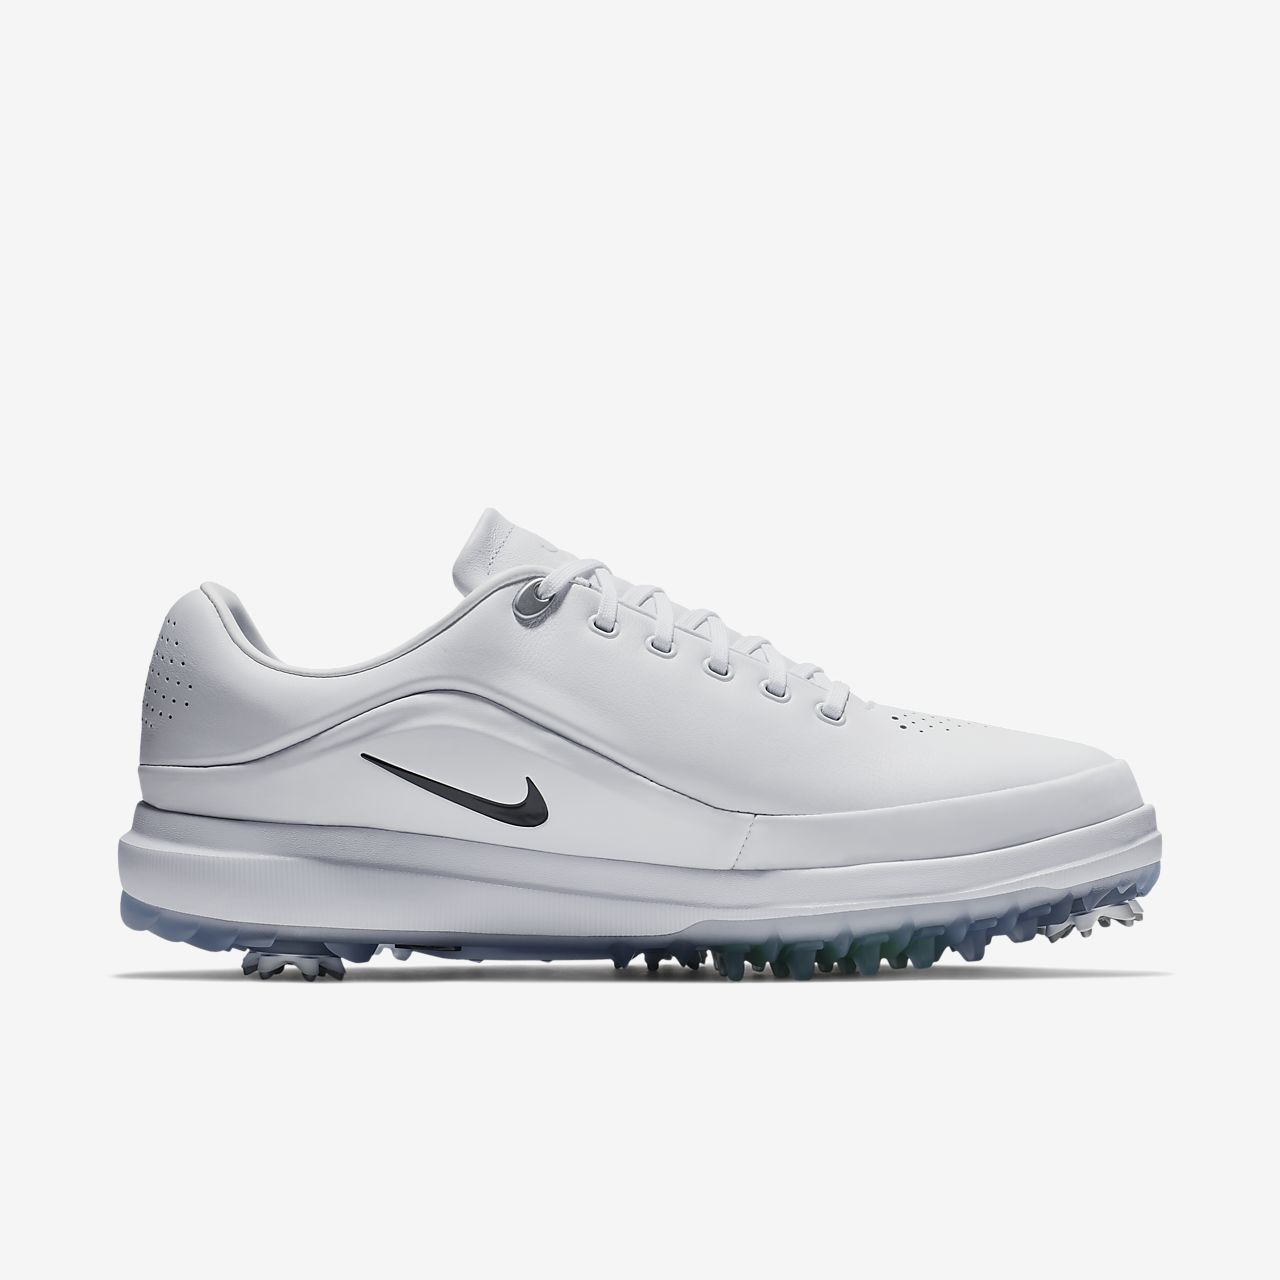 182fc7150faa Nike Air Zoom Precision Men s Golf Shoe. Nike.com CA